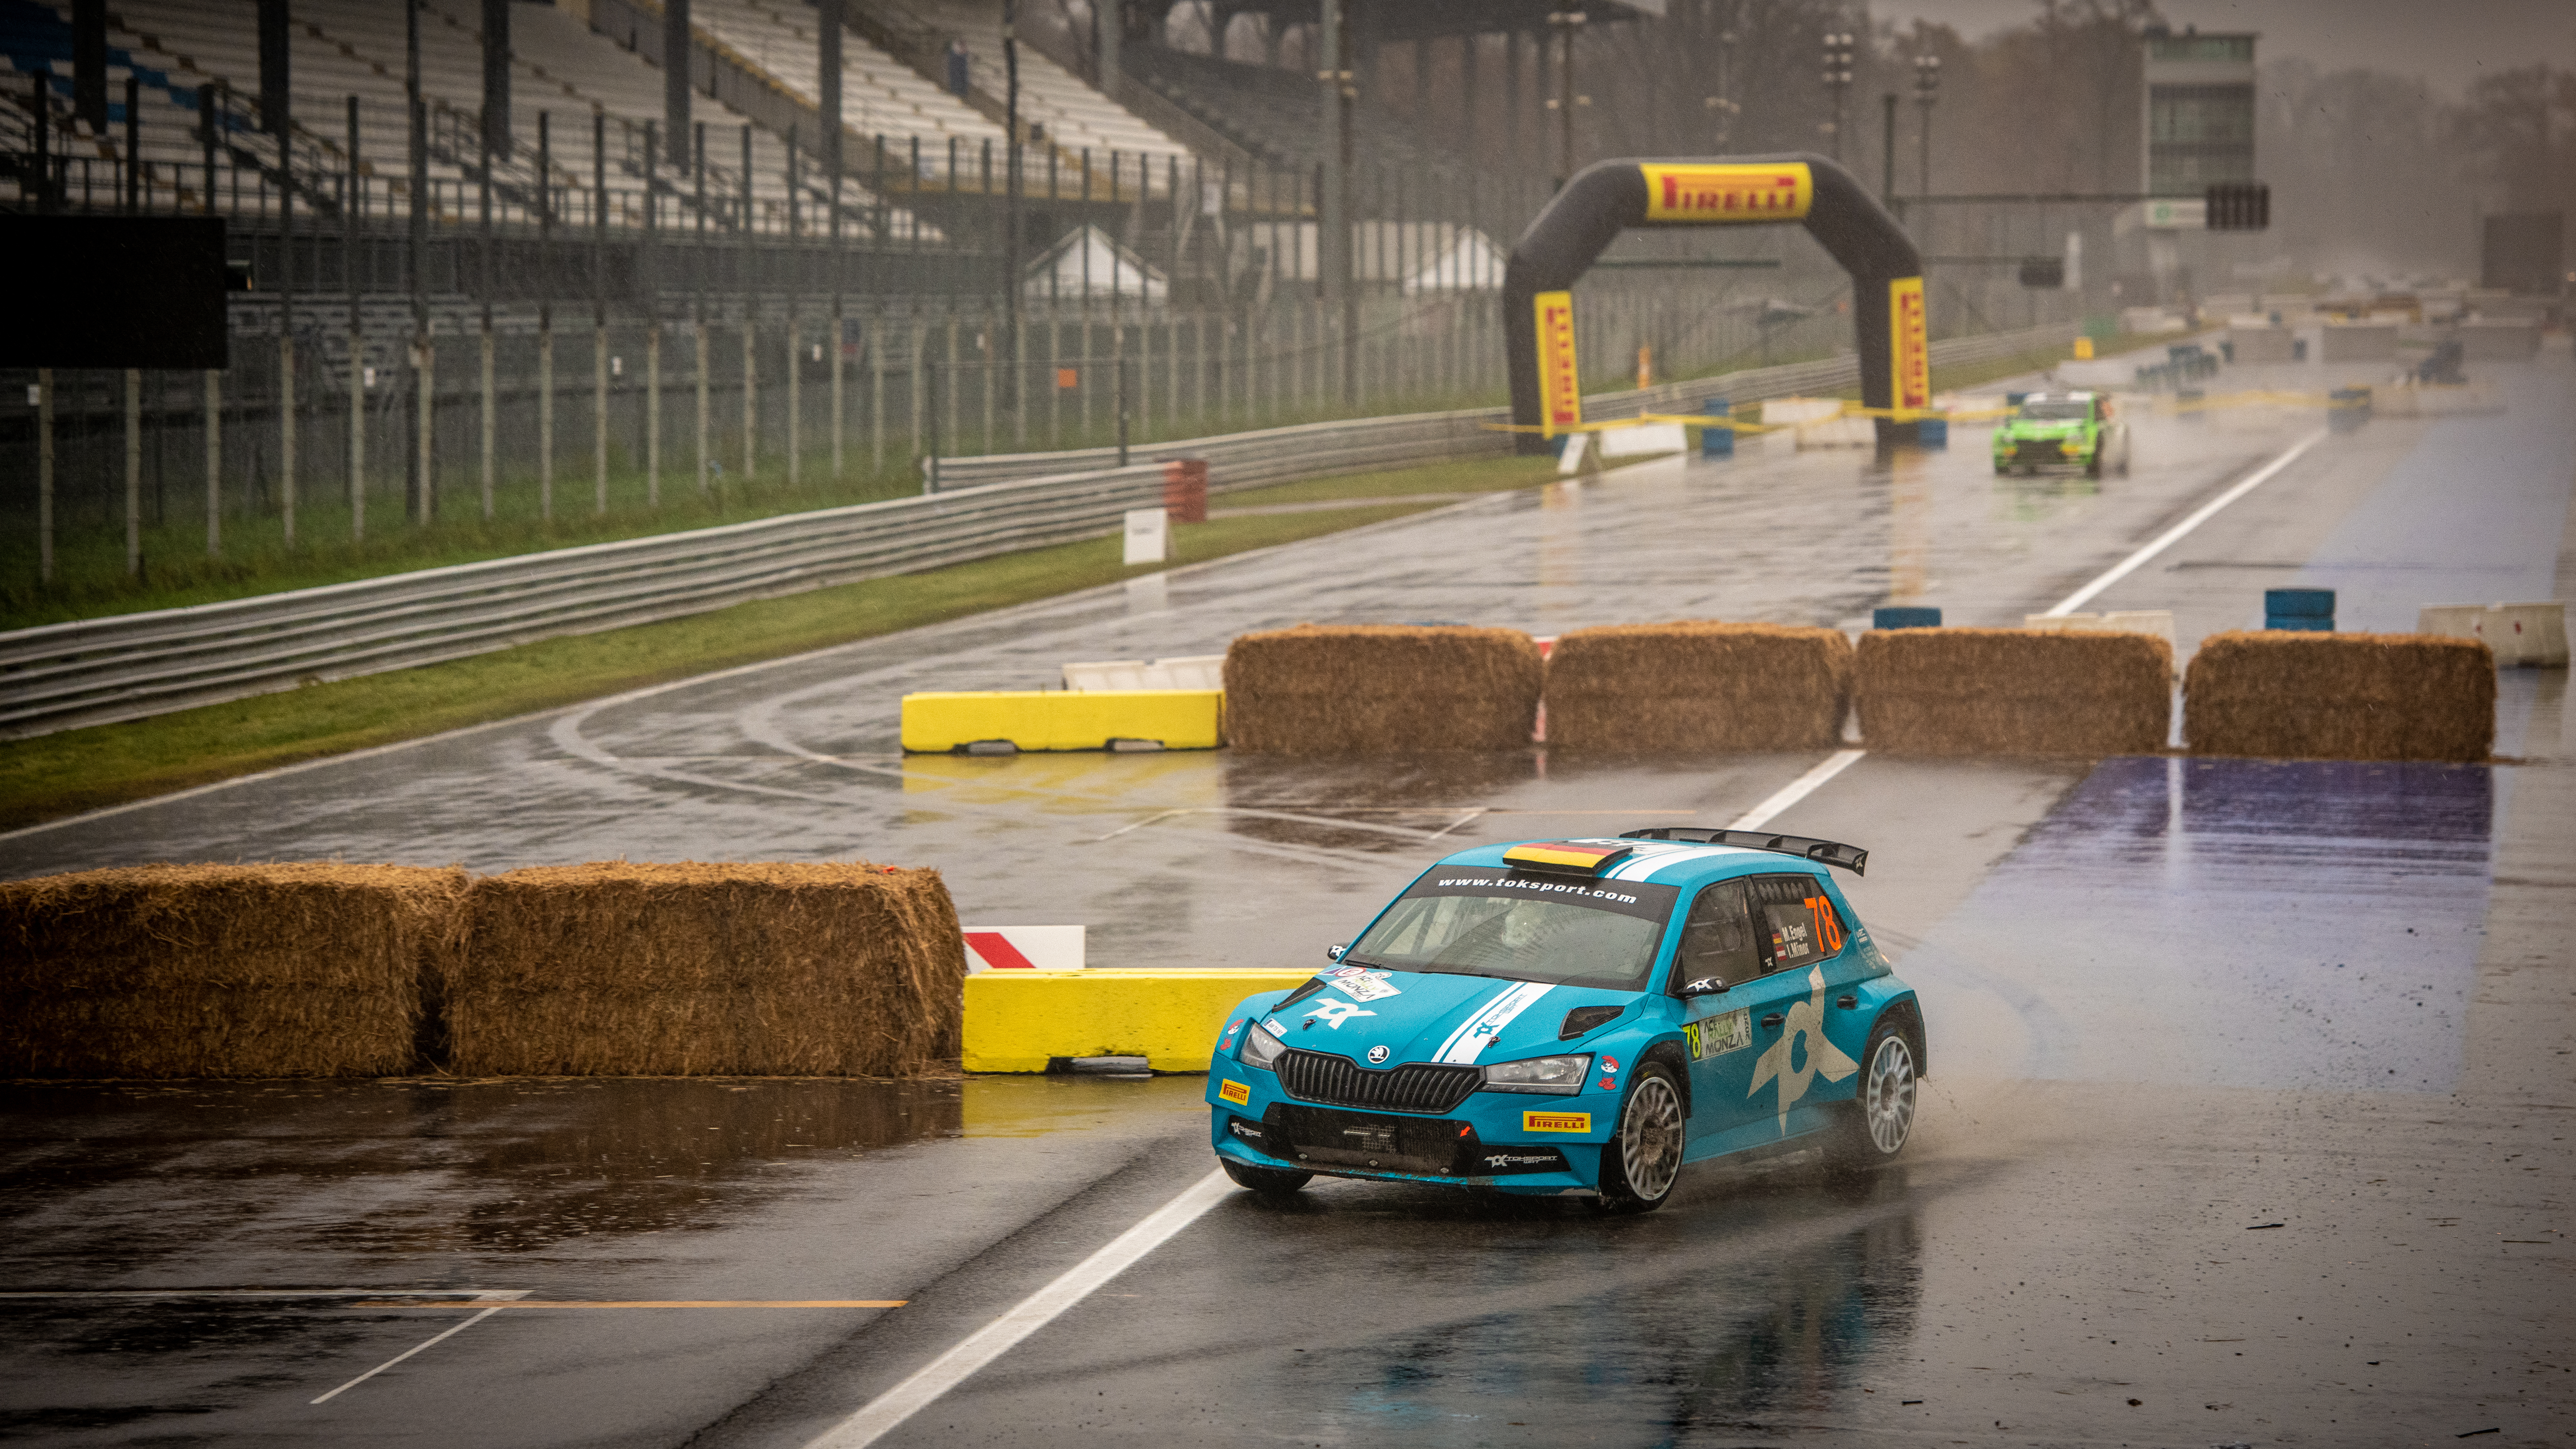 ACI Rally Monza: Clever tactics pays off as SKODA crews lead WRC2 and WRC3 after first leg - Image 7